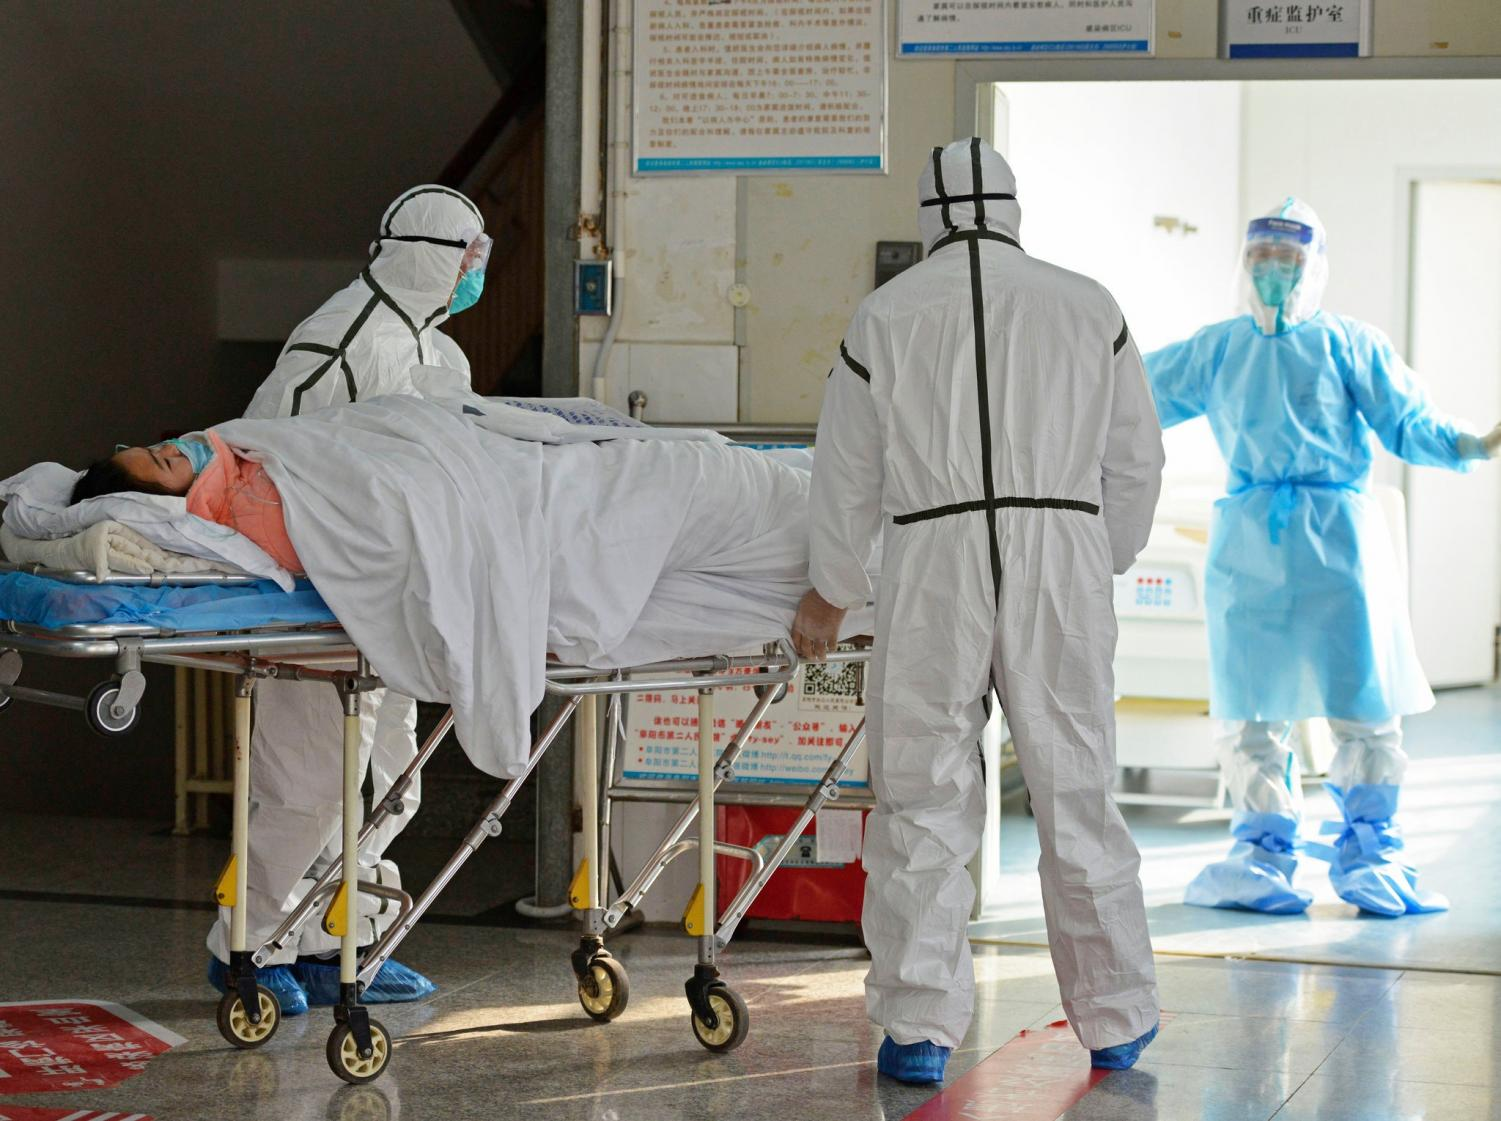 Medical+workers+transporting+coronavirus+patient+into+isolation+ward+in+Fuyang%2C+China.+%28Chinatopix+via+associated+press%29